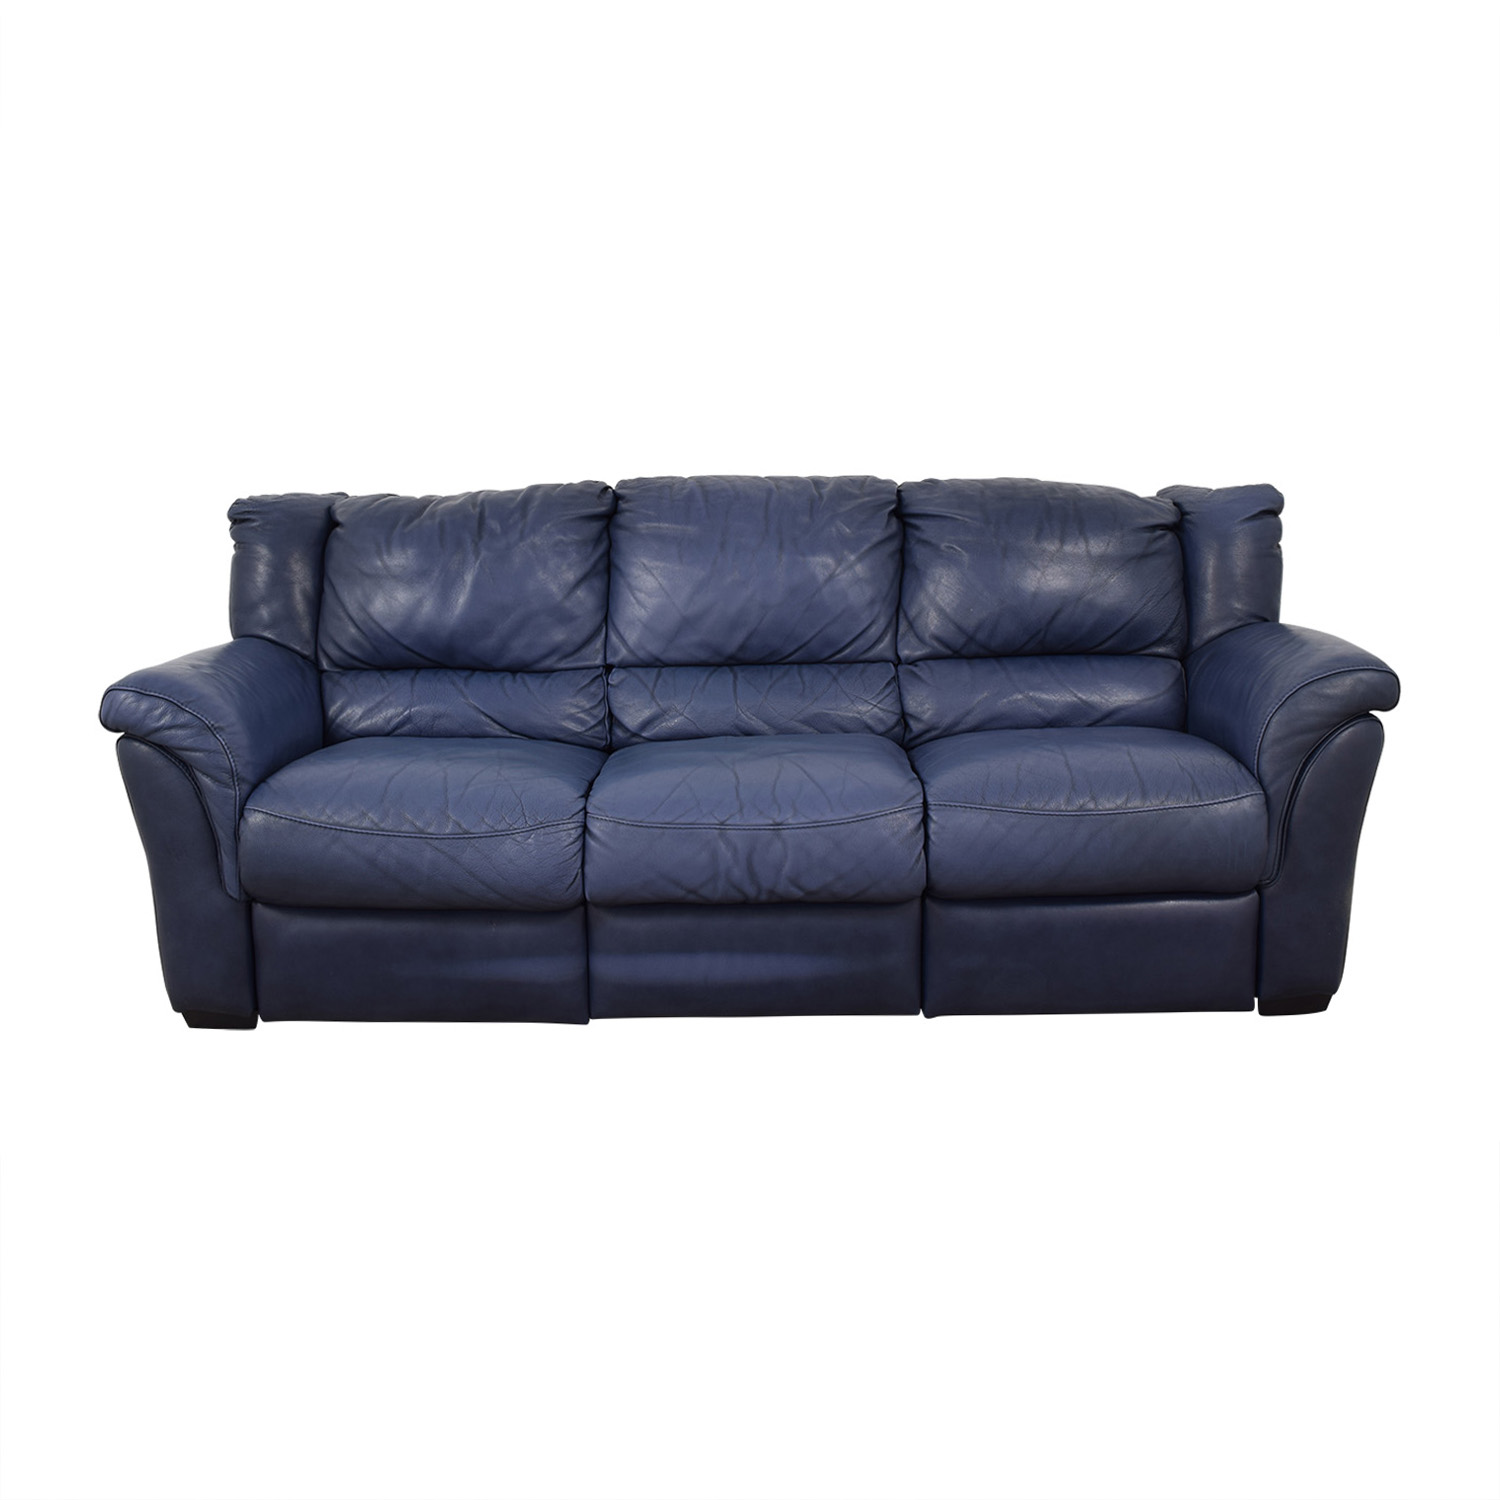 Chateau Dax Furniture Reviews: Chateau D'Ax Chateau D'Ax Blue Three-Cushion